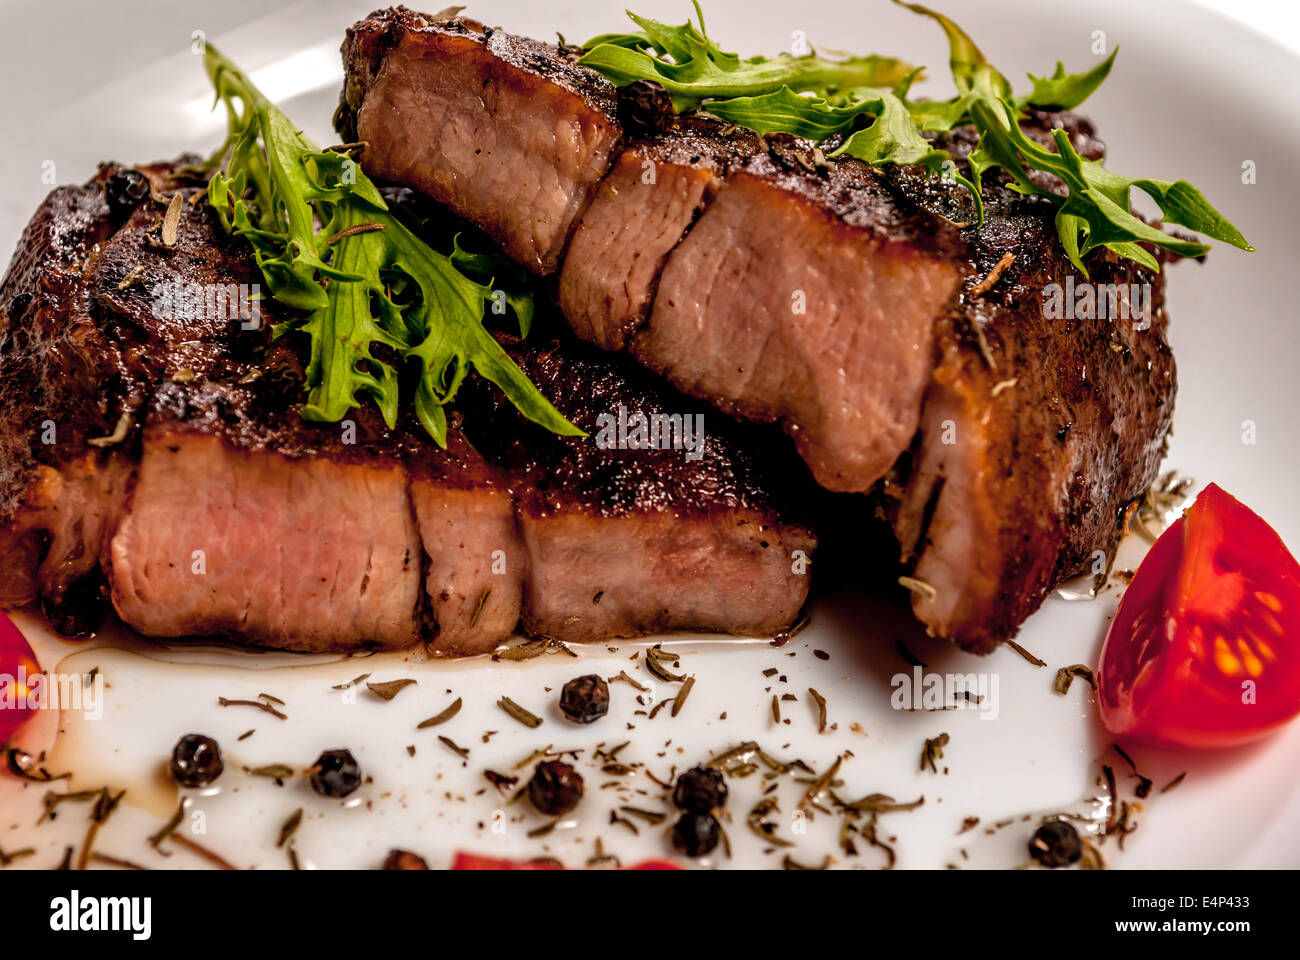 Pork neck steak with vegetables and pepper - Stock Image